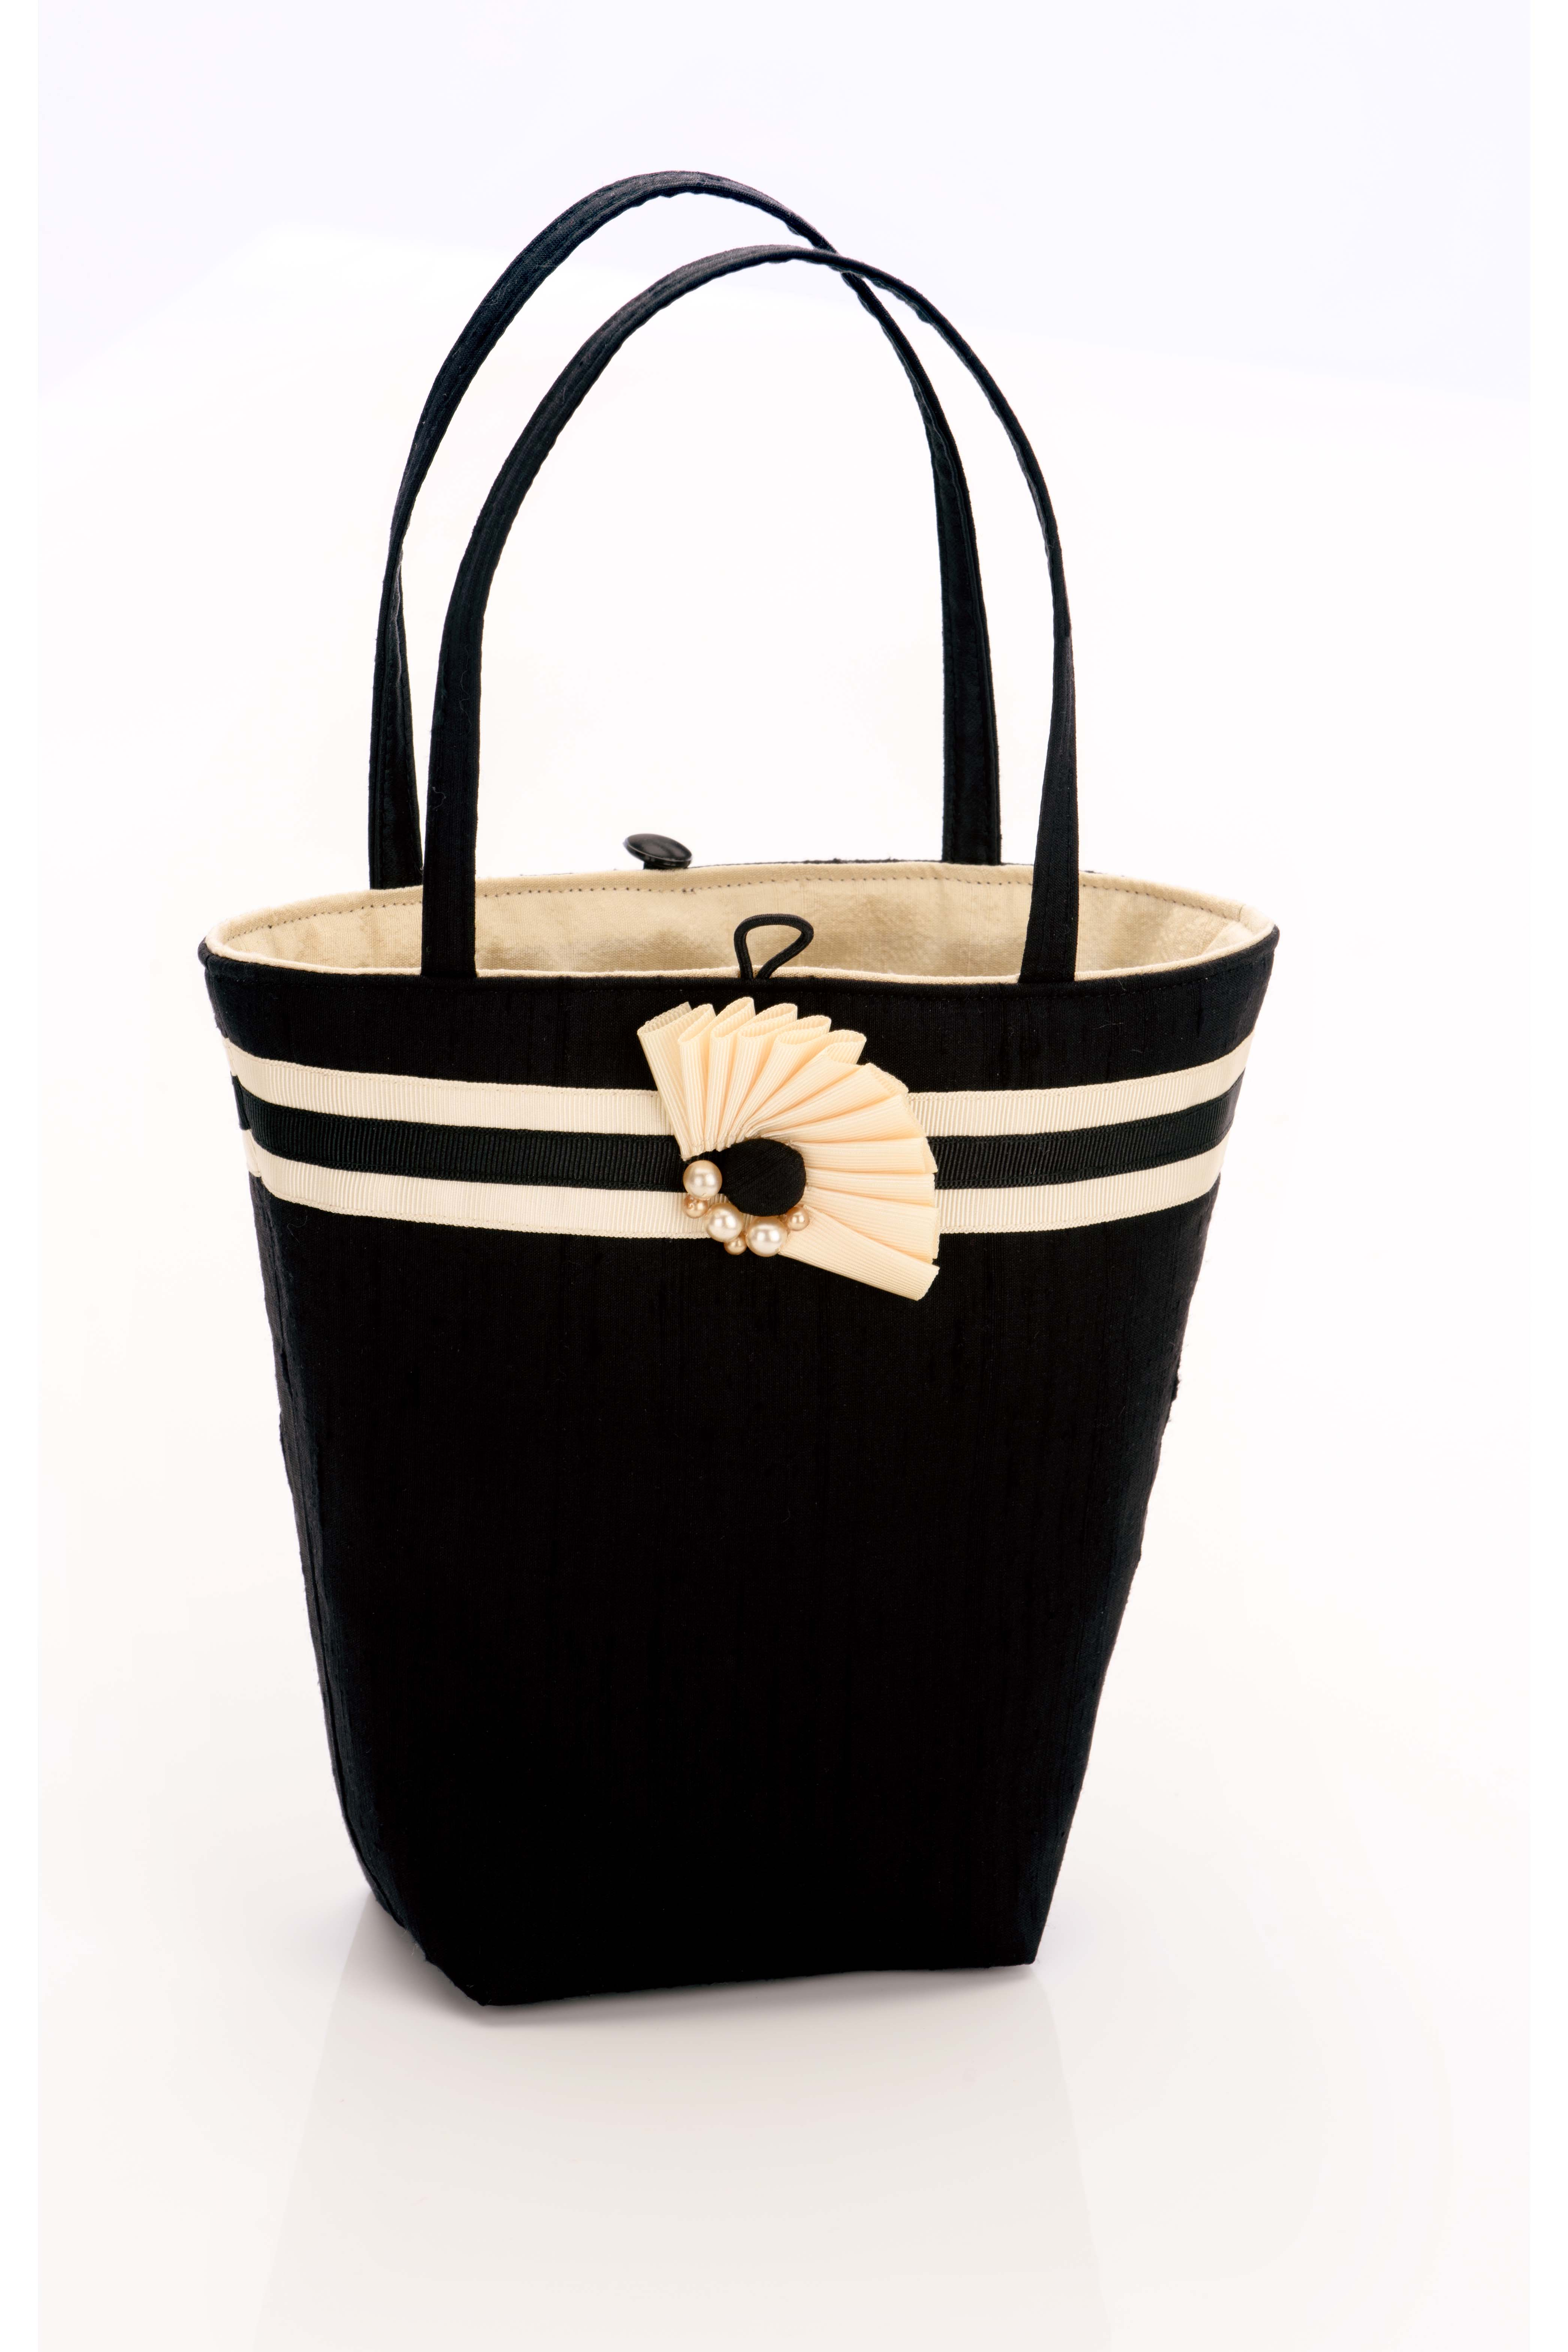 Black silk handbag with black and cream trim